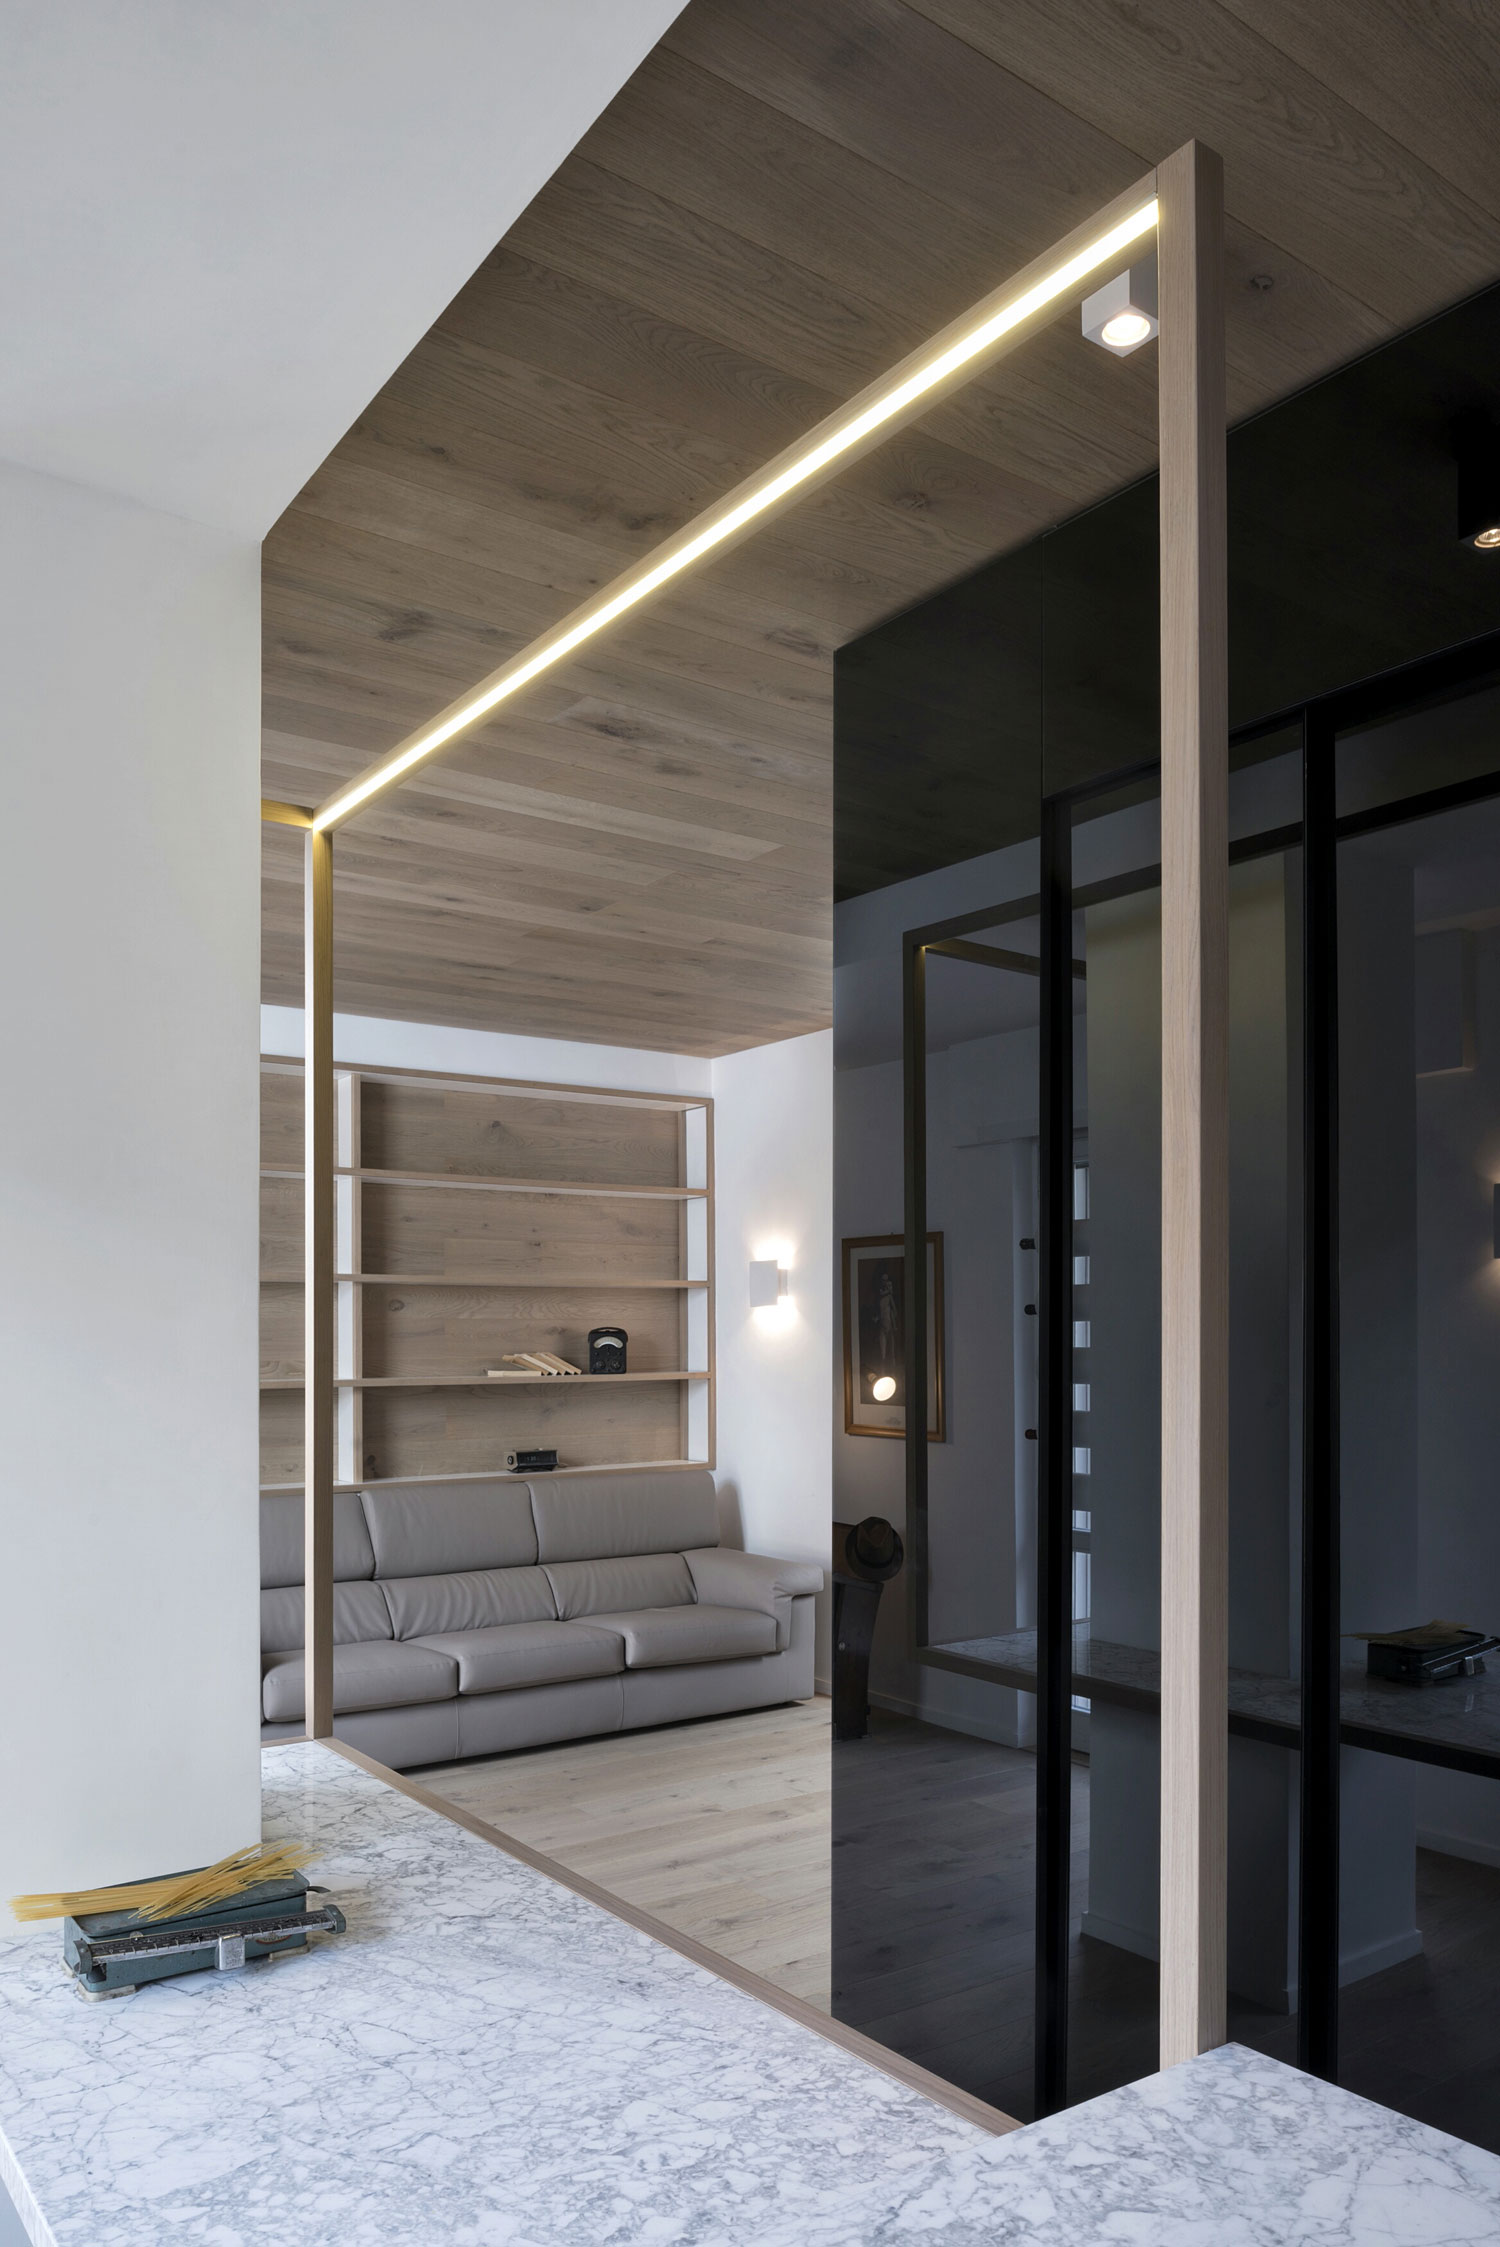 The Cube Apartment in Rome by Noses Architects-09